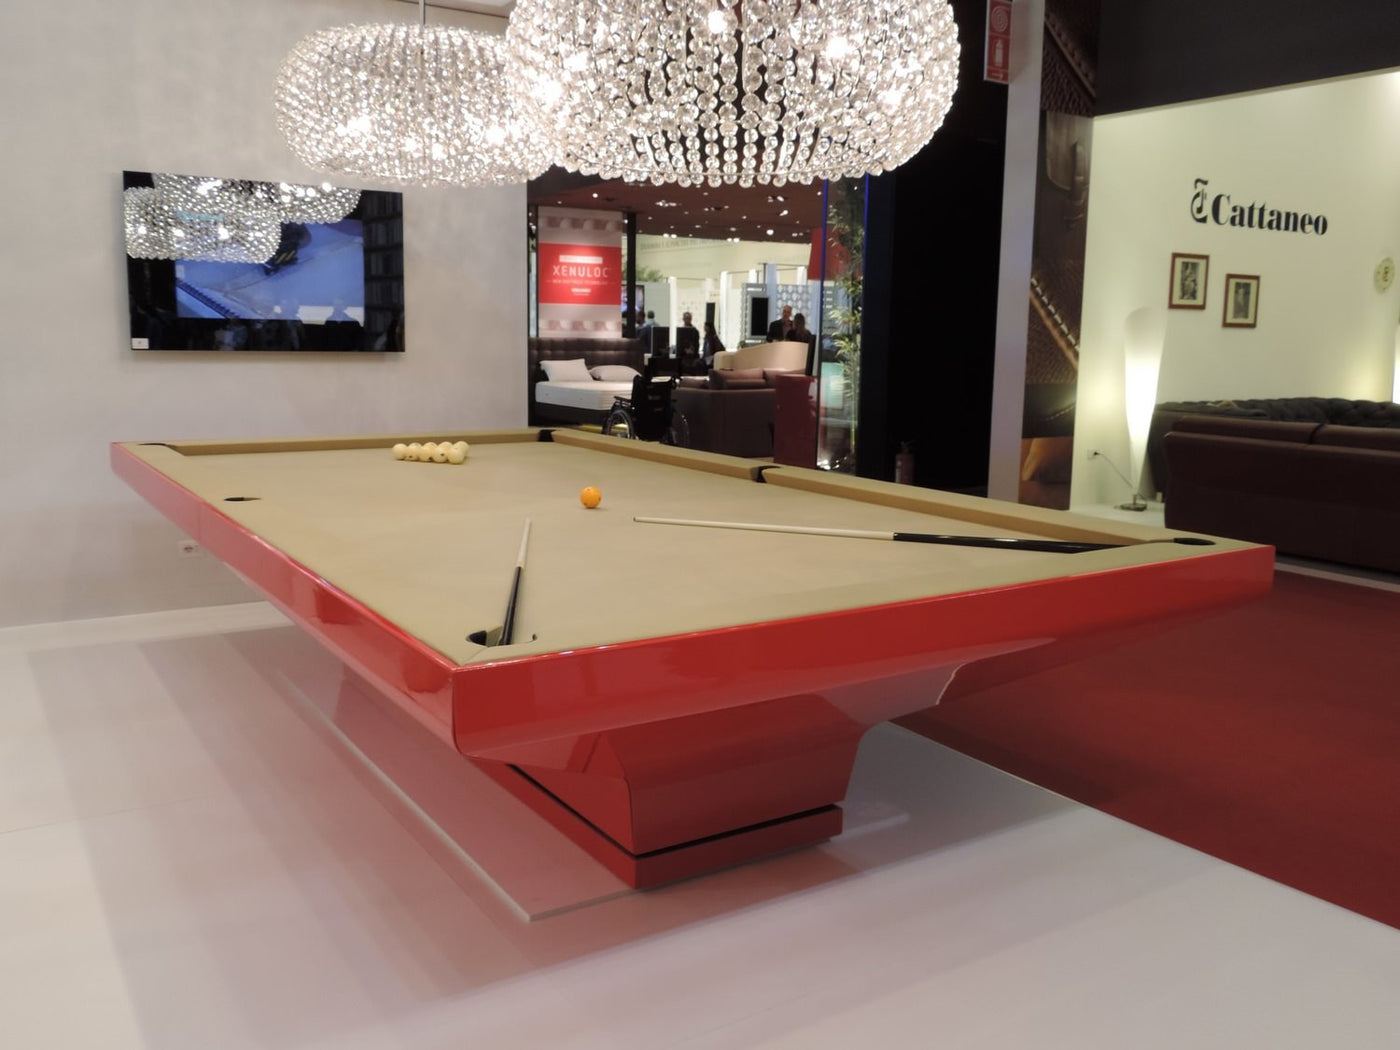 mbm biliardi b ig pool table robbies billiards. Black Bedroom Furniture Sets. Home Design Ideas